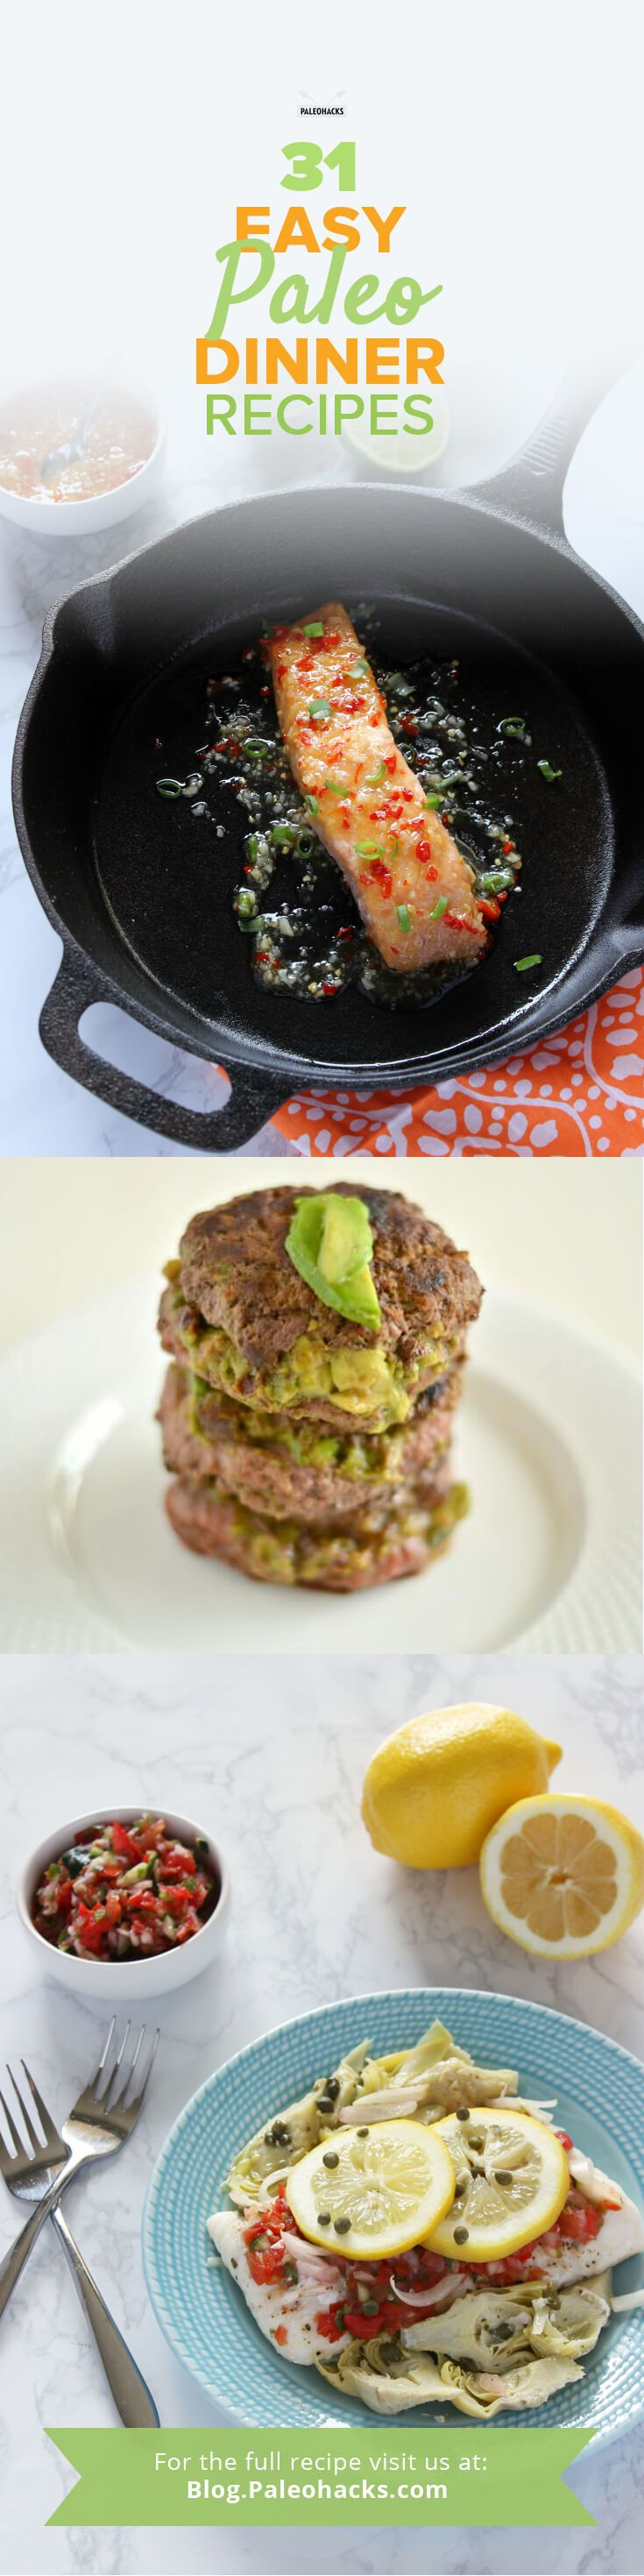 Easy paleo recipes blog